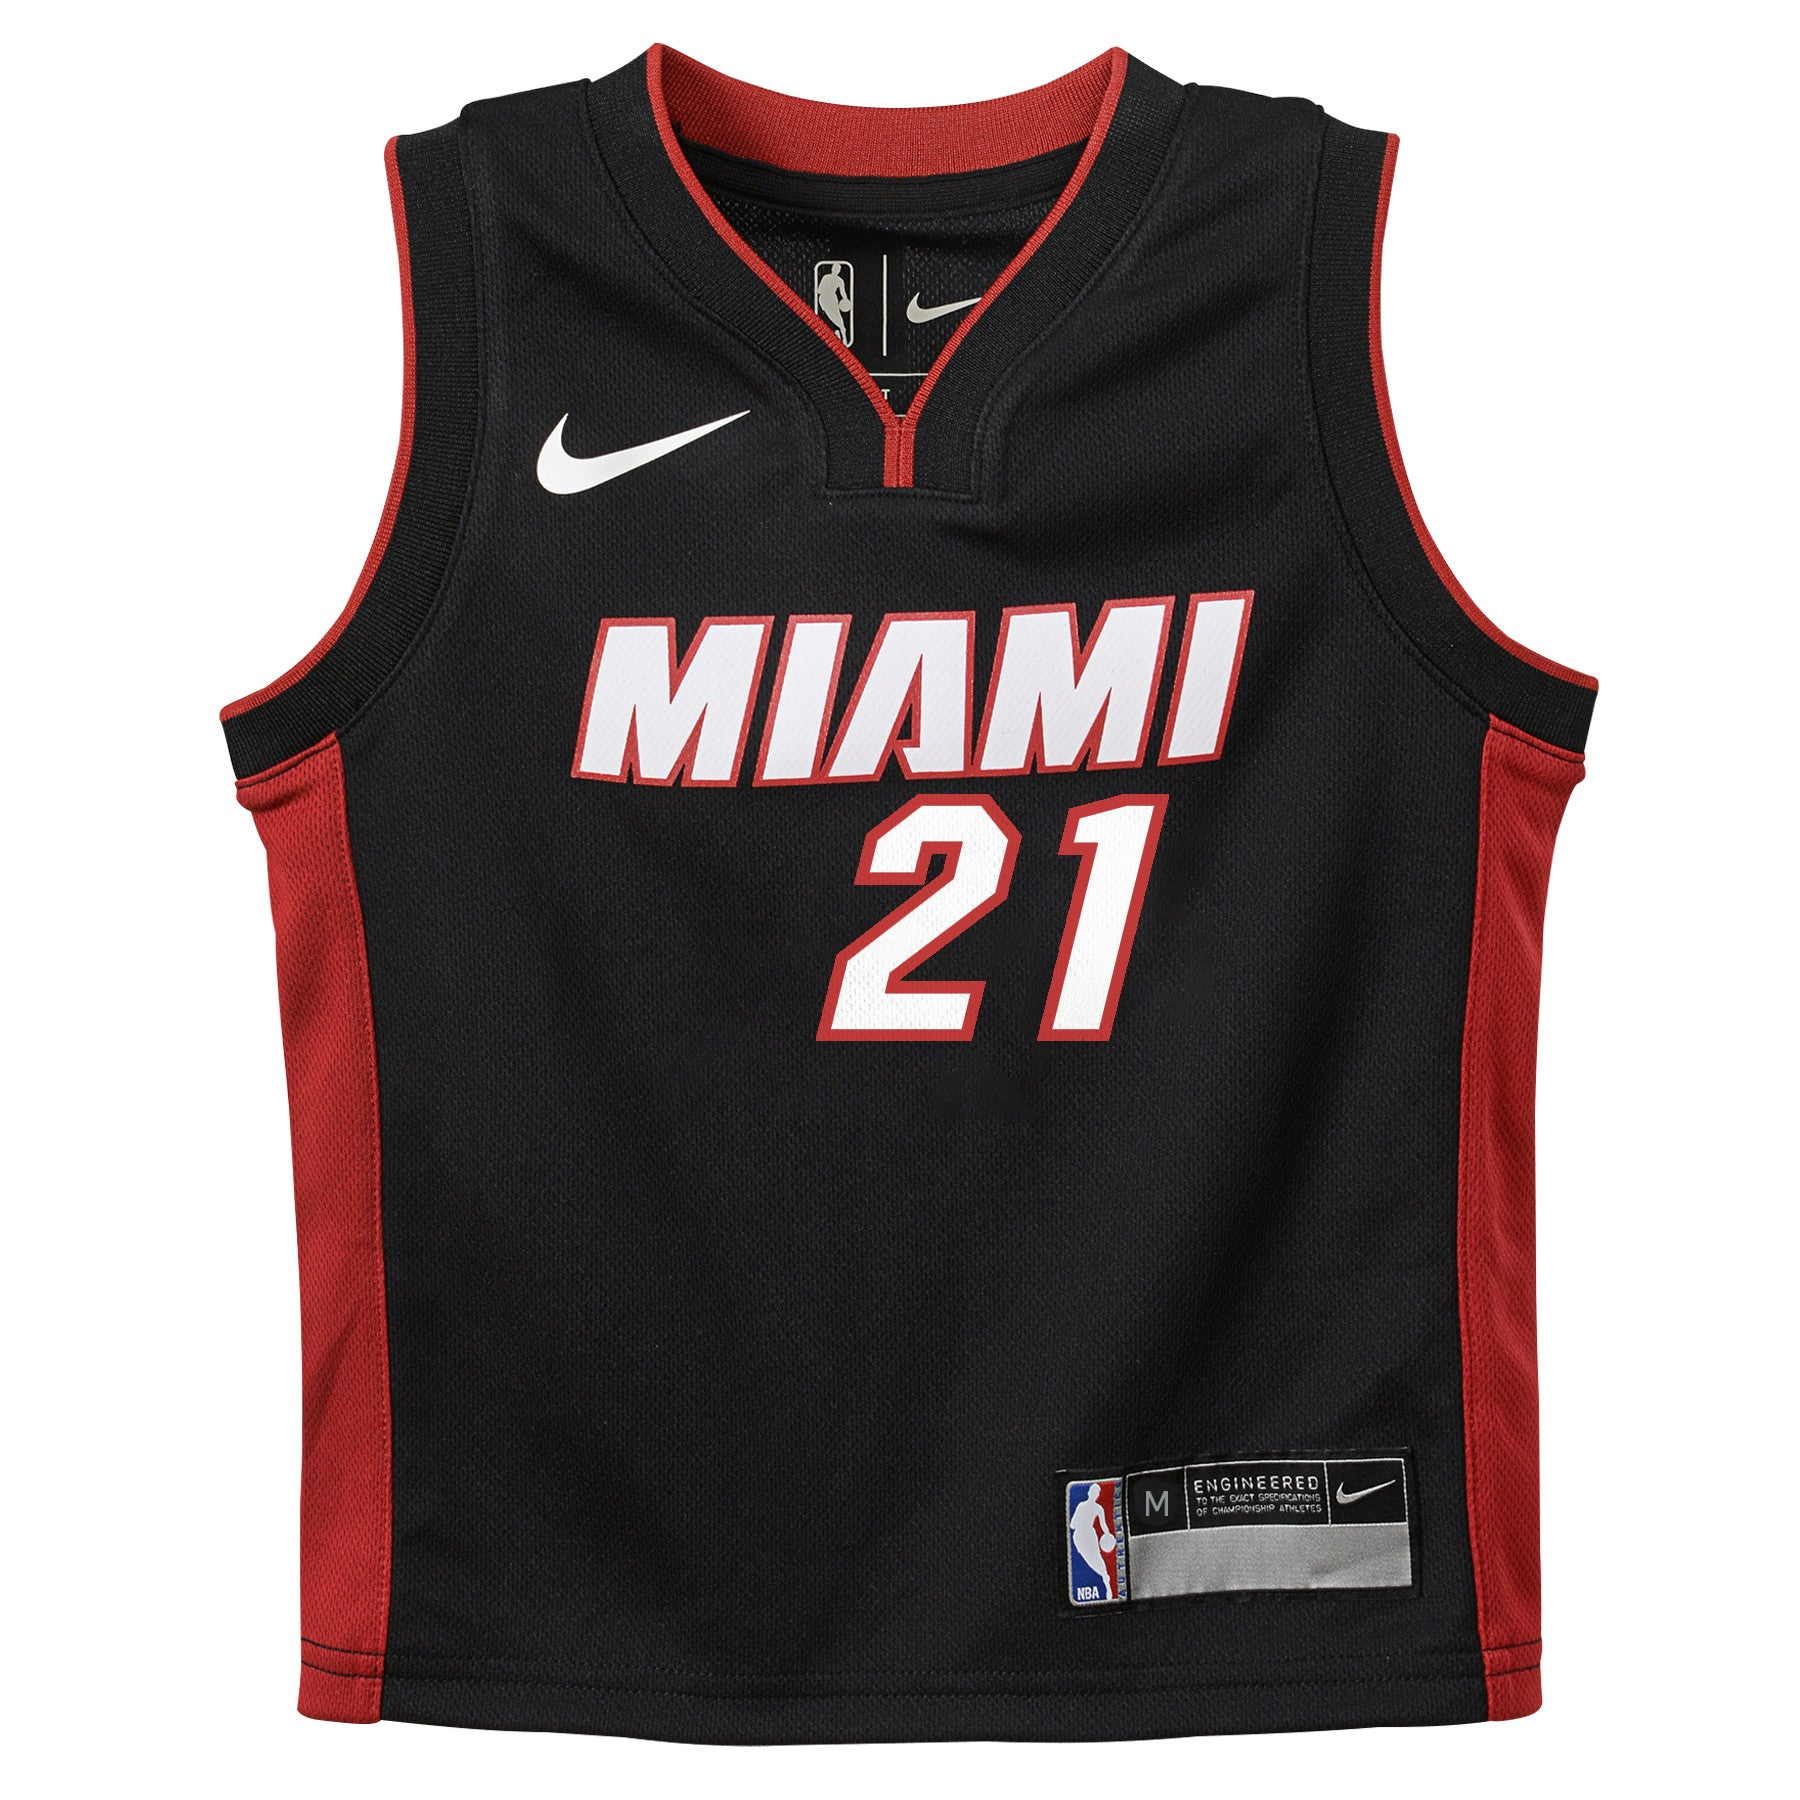 b5b368a89 Hassan Whiteside Nike Miami HEAT Kids Replica jersey Black - featured image